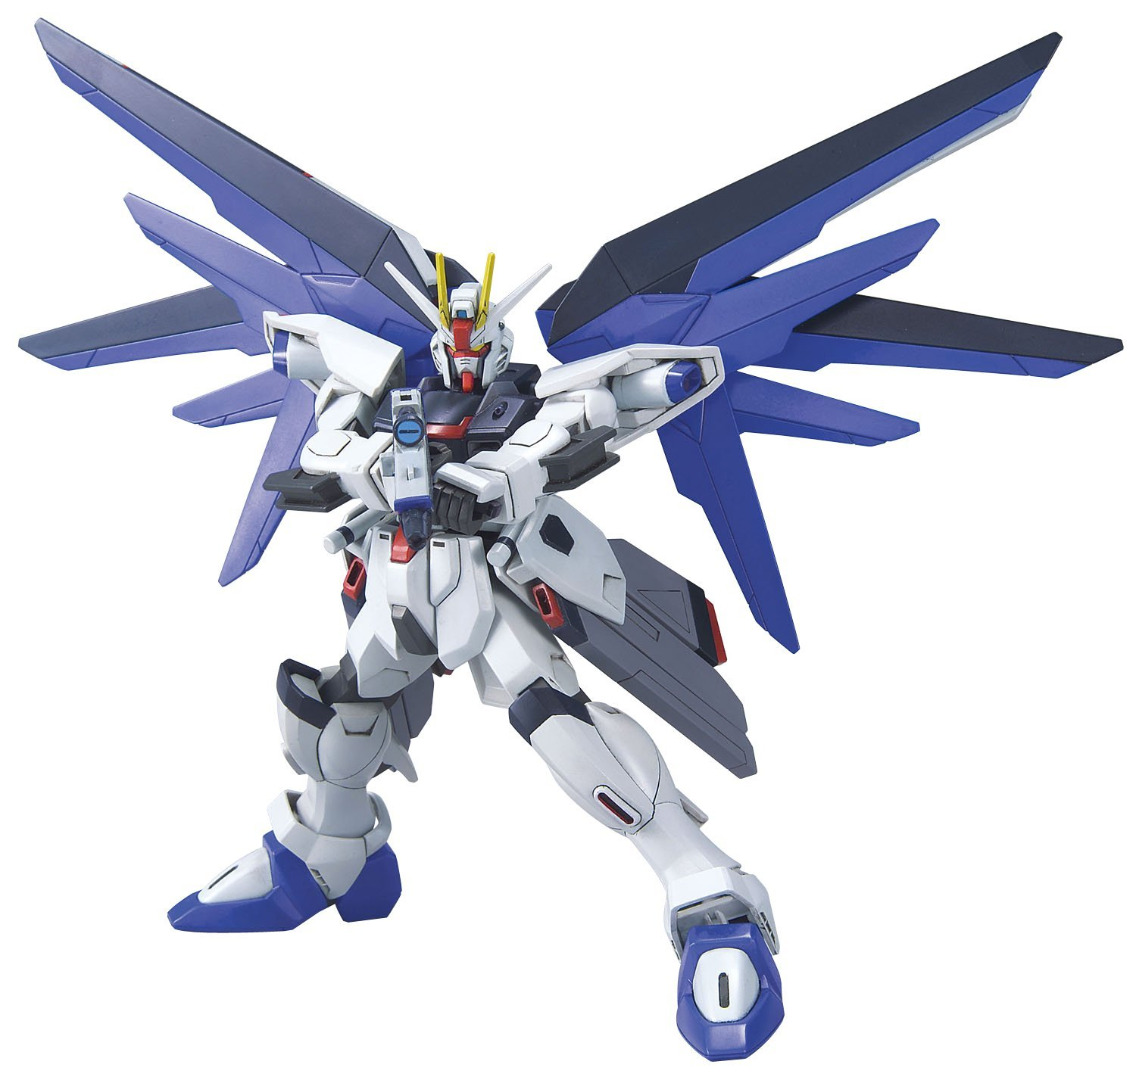 HG High Grade GUNDAM FREEDOM R15 1/144